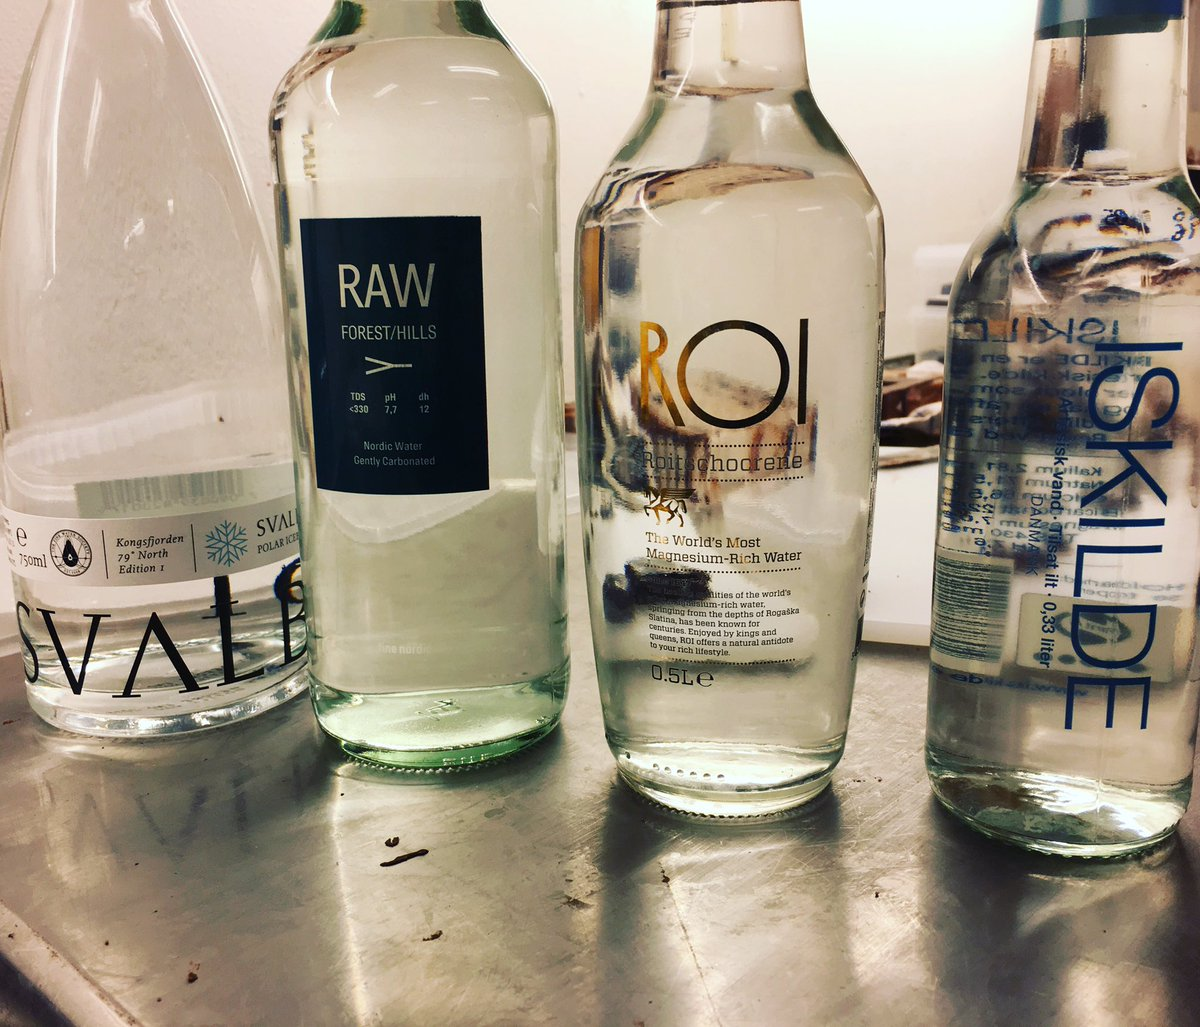 4 amazing waters in front of me with such different taste profiles Which one did you already tastet? #watersommelier <br>http://pic.twitter.com/BpLxLSYcjc